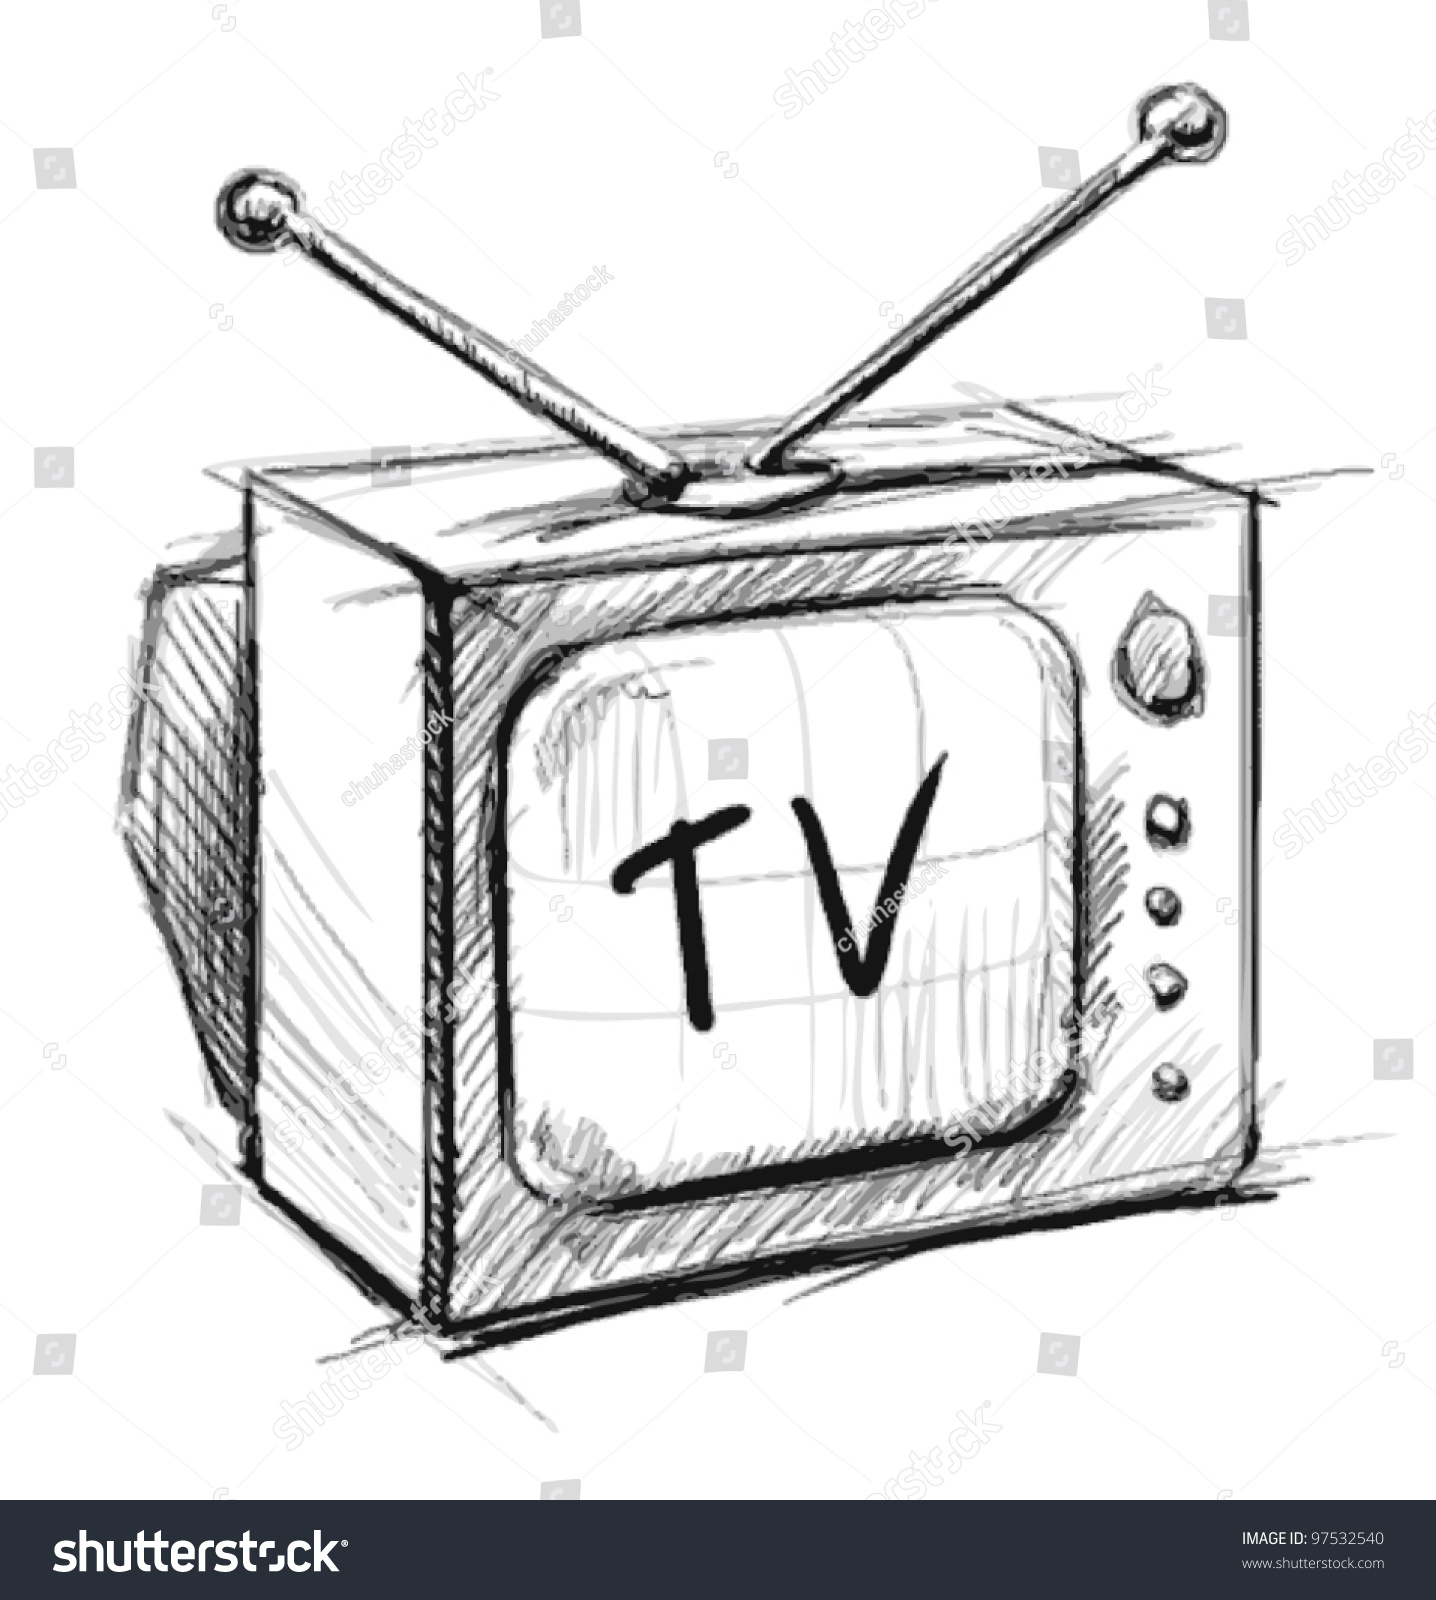 tv drawing. retro tv with antenna hand drawing sketch vector illustration isolated on white background e